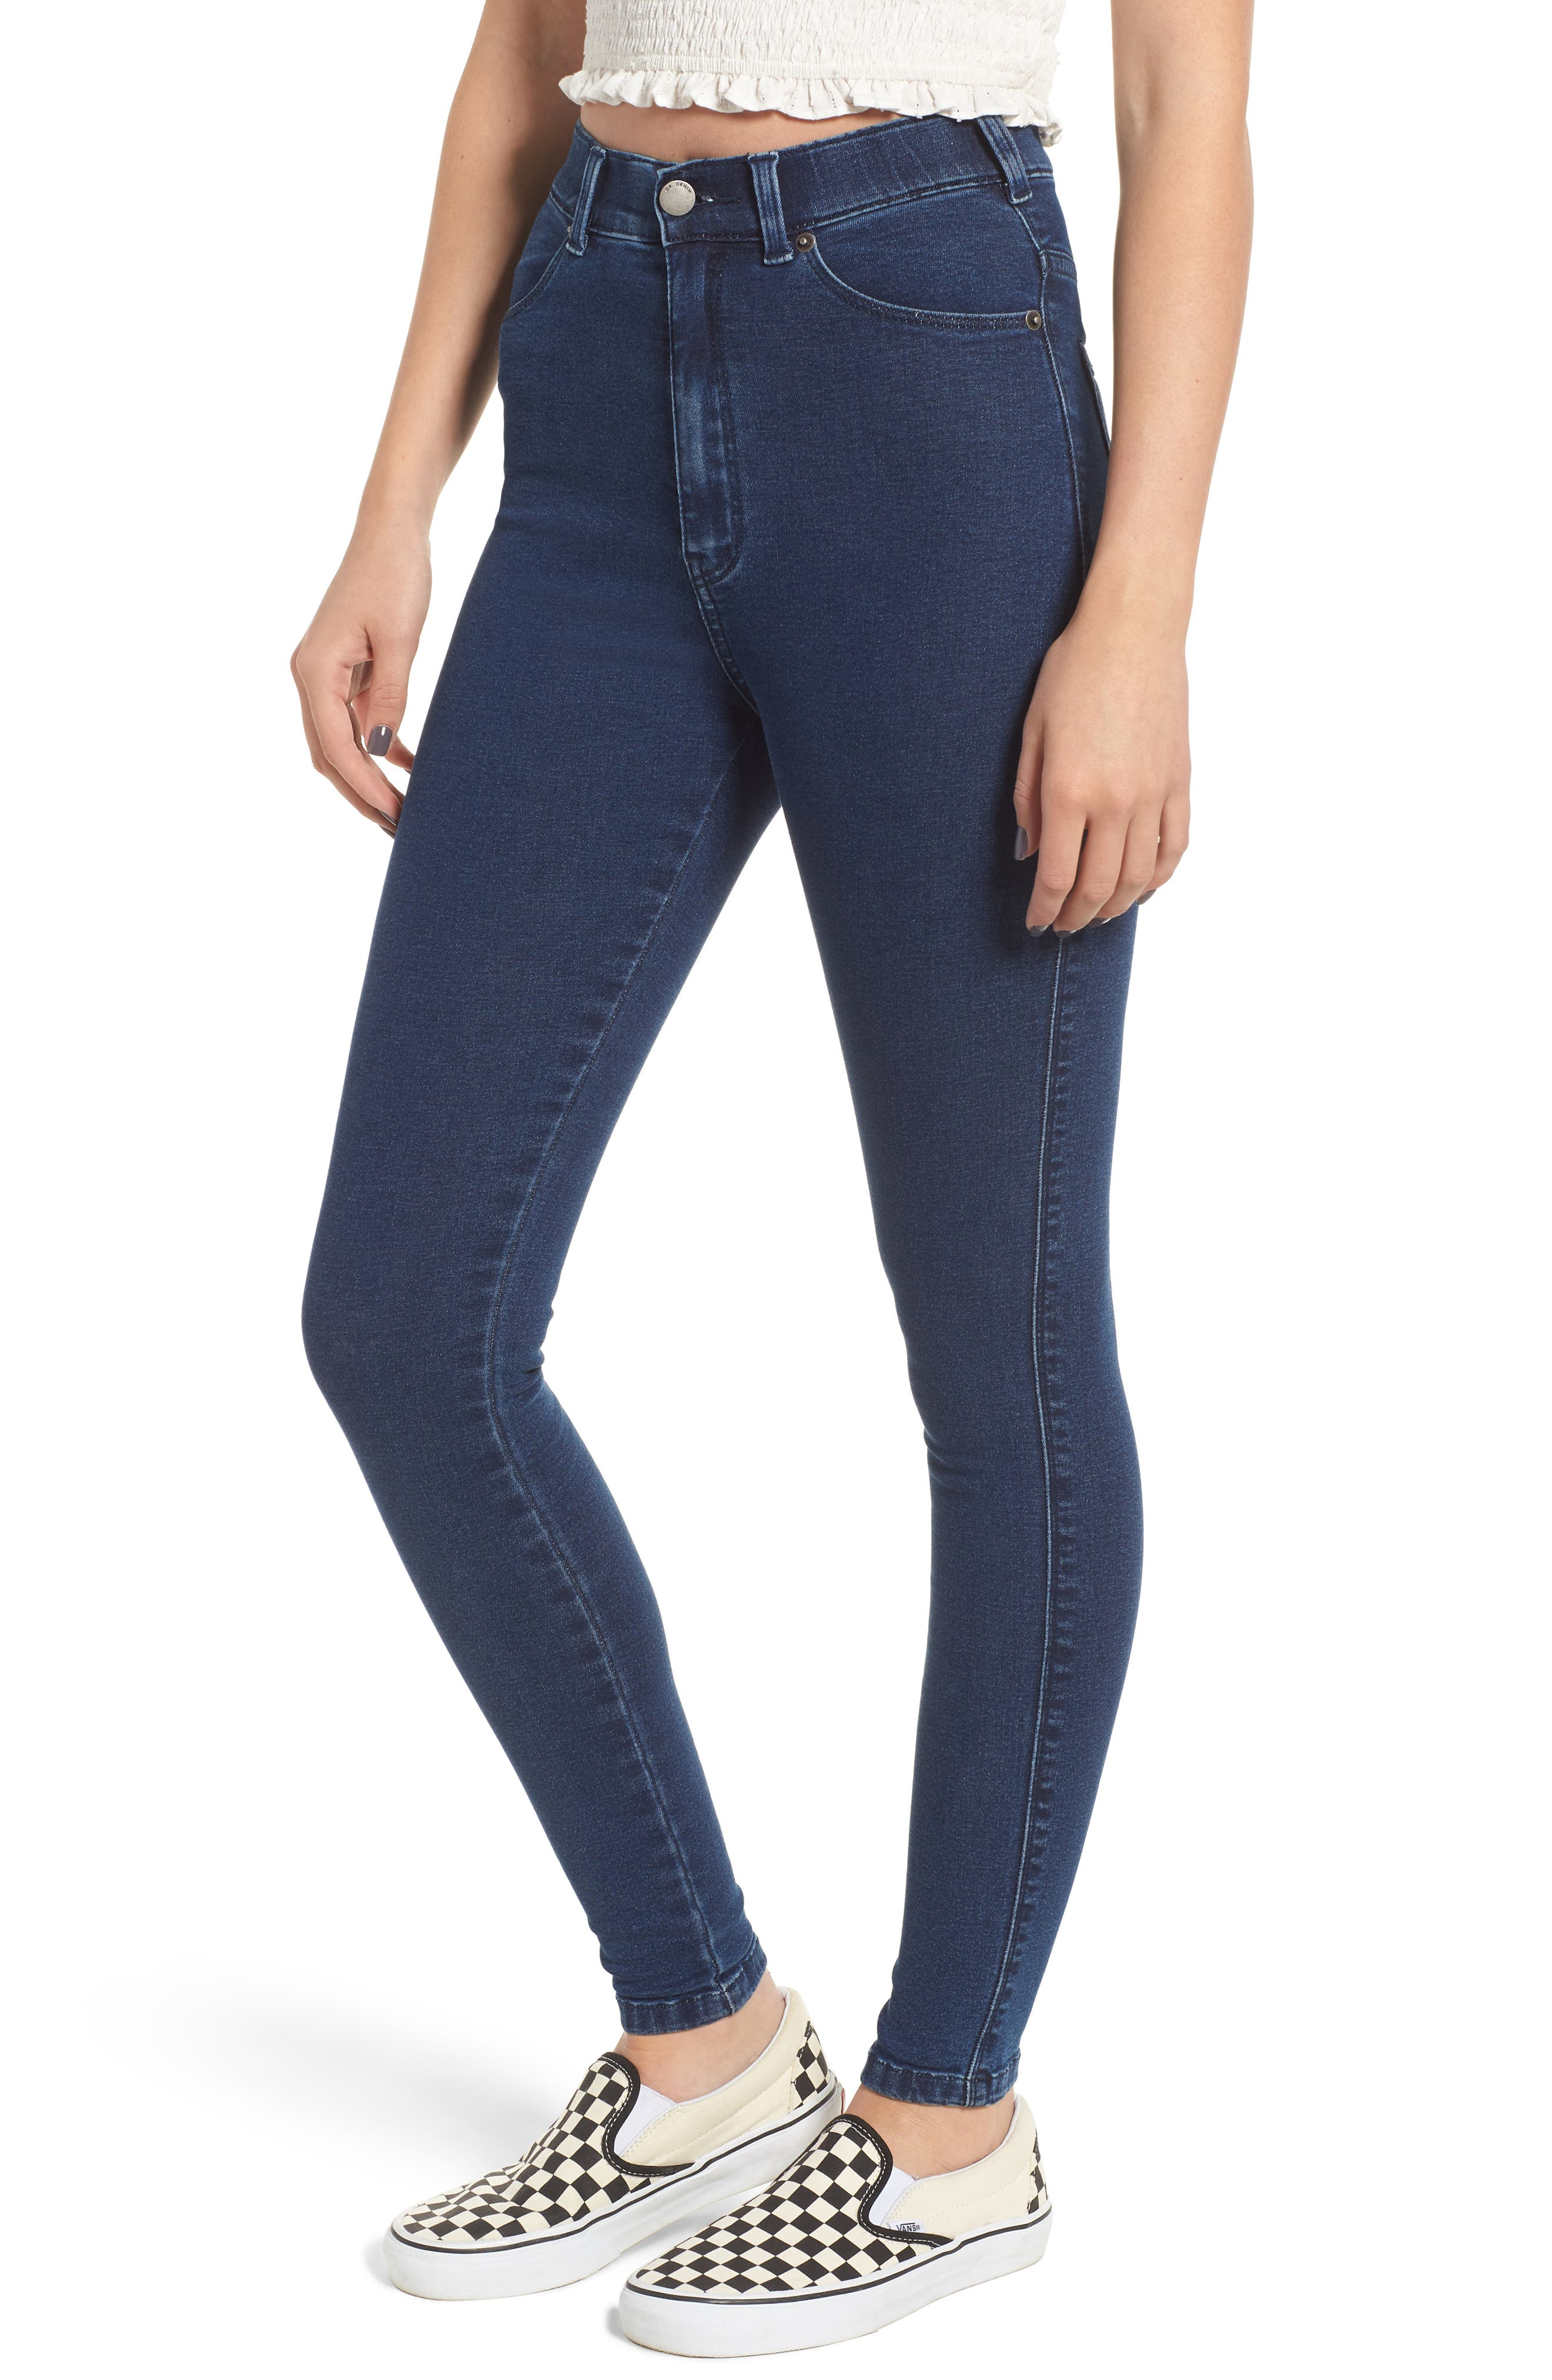 Moxy Skinny Jeans,                         Main,                         color, 400